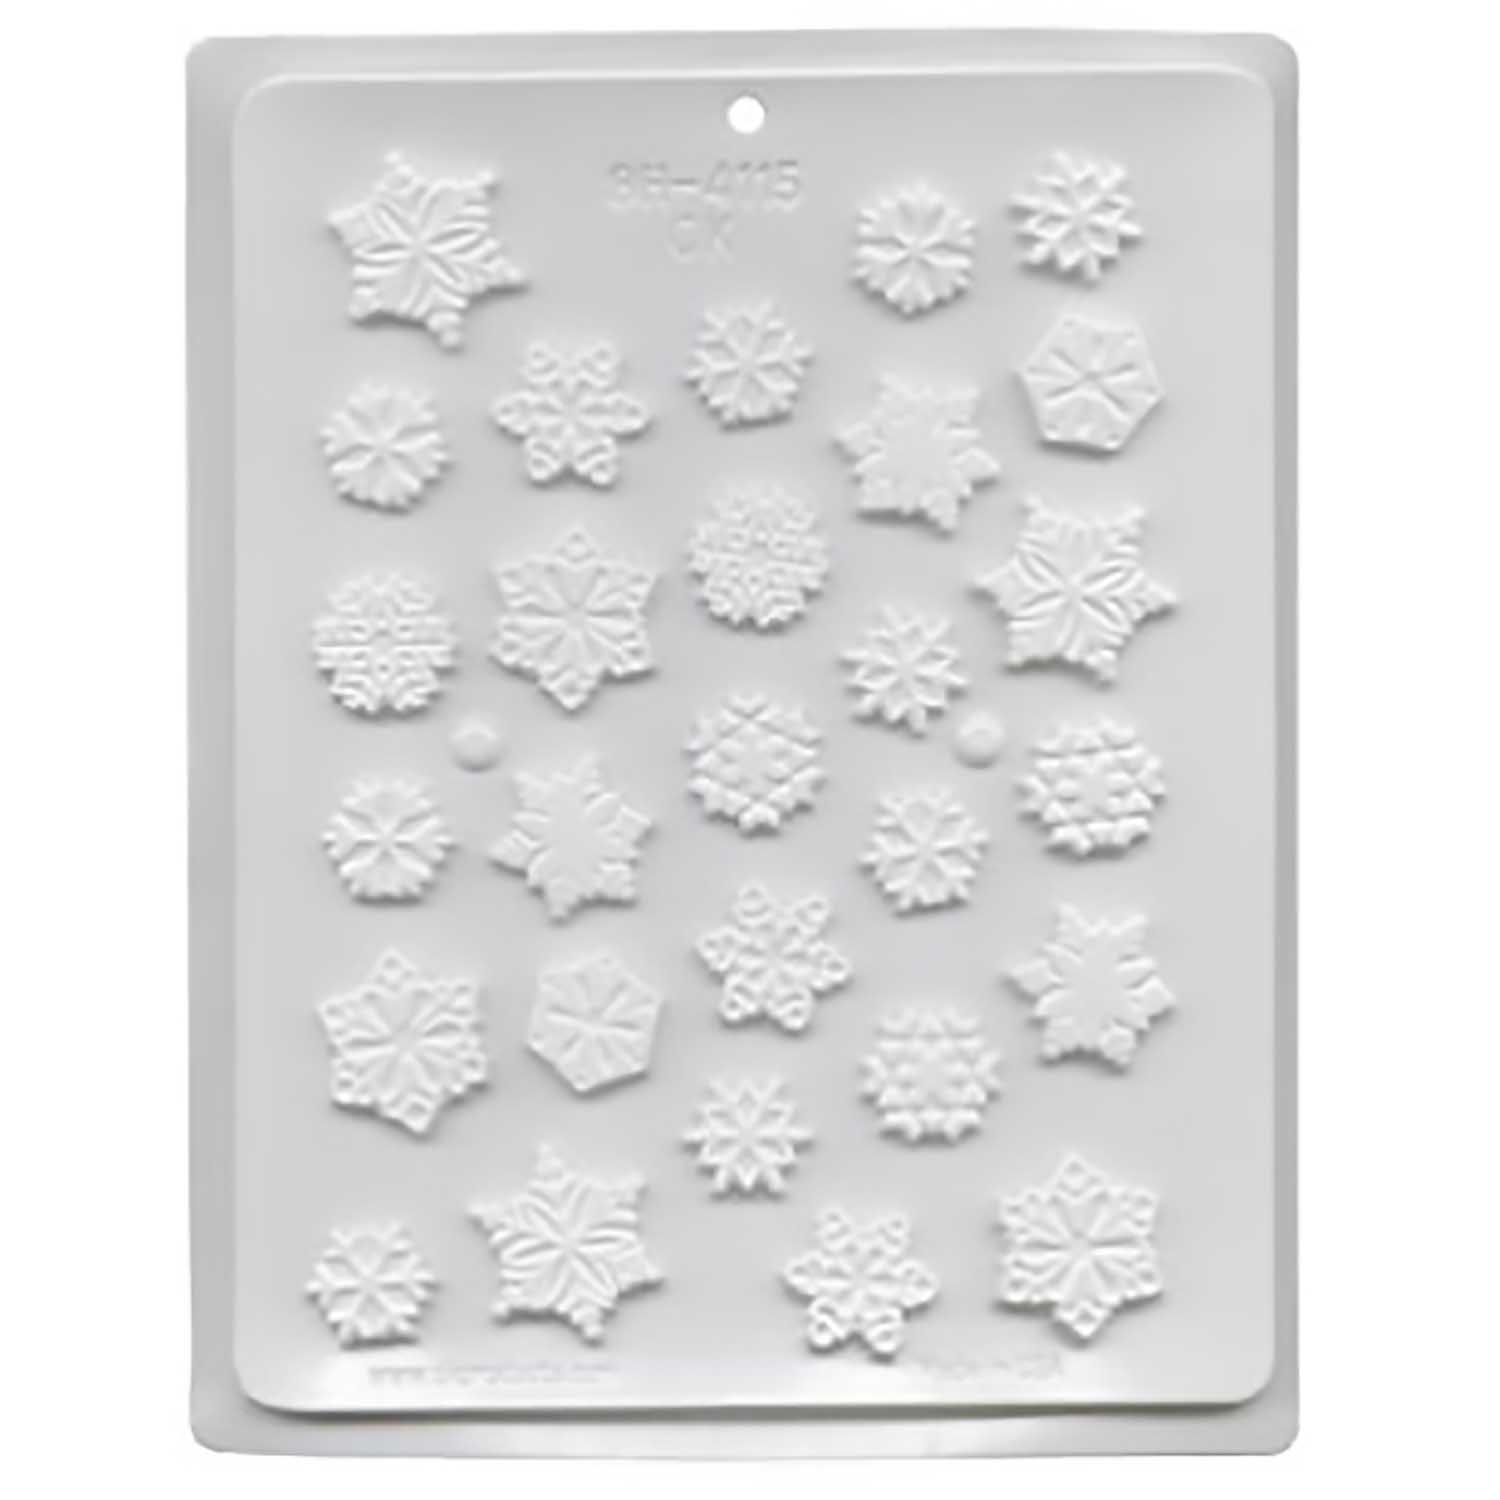 Hard Candy Mold - Snowflakes